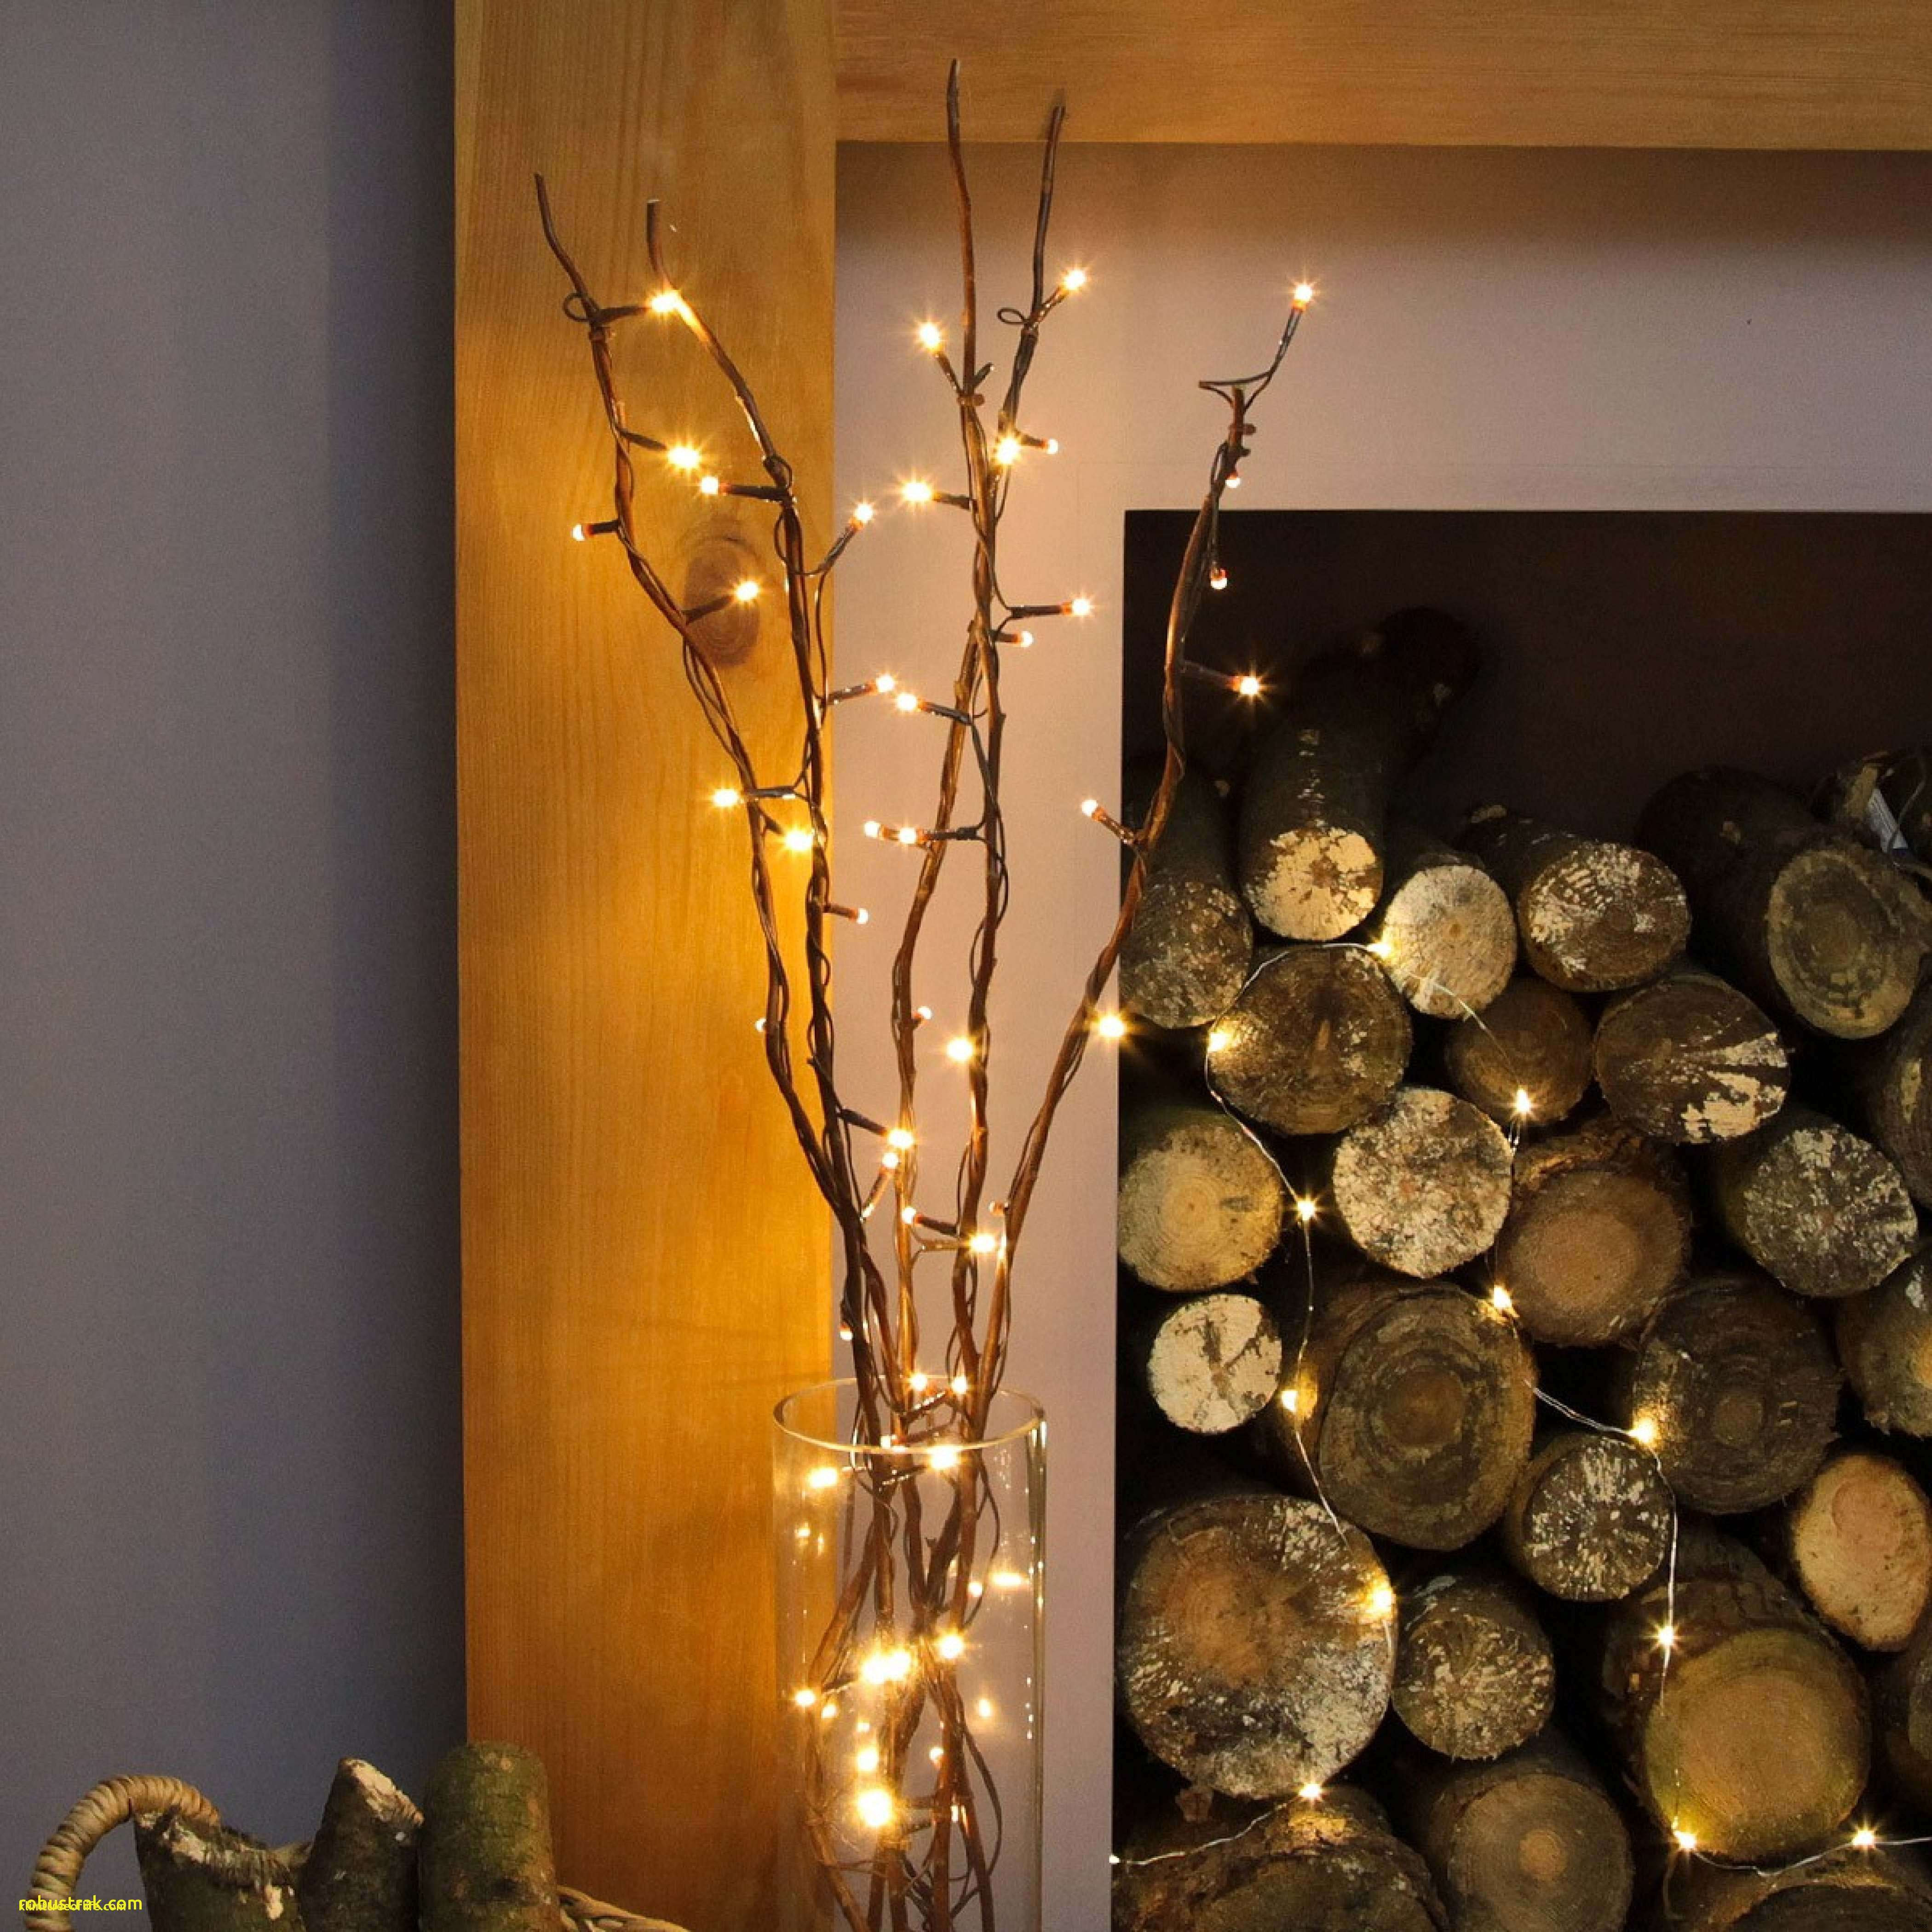 decorative twigs for vases of lovely decorating with vases and twigs home design ideas with regard to hl016br 1 2h vases decorative lights for 5 brown willow twig 50 warm white leds i